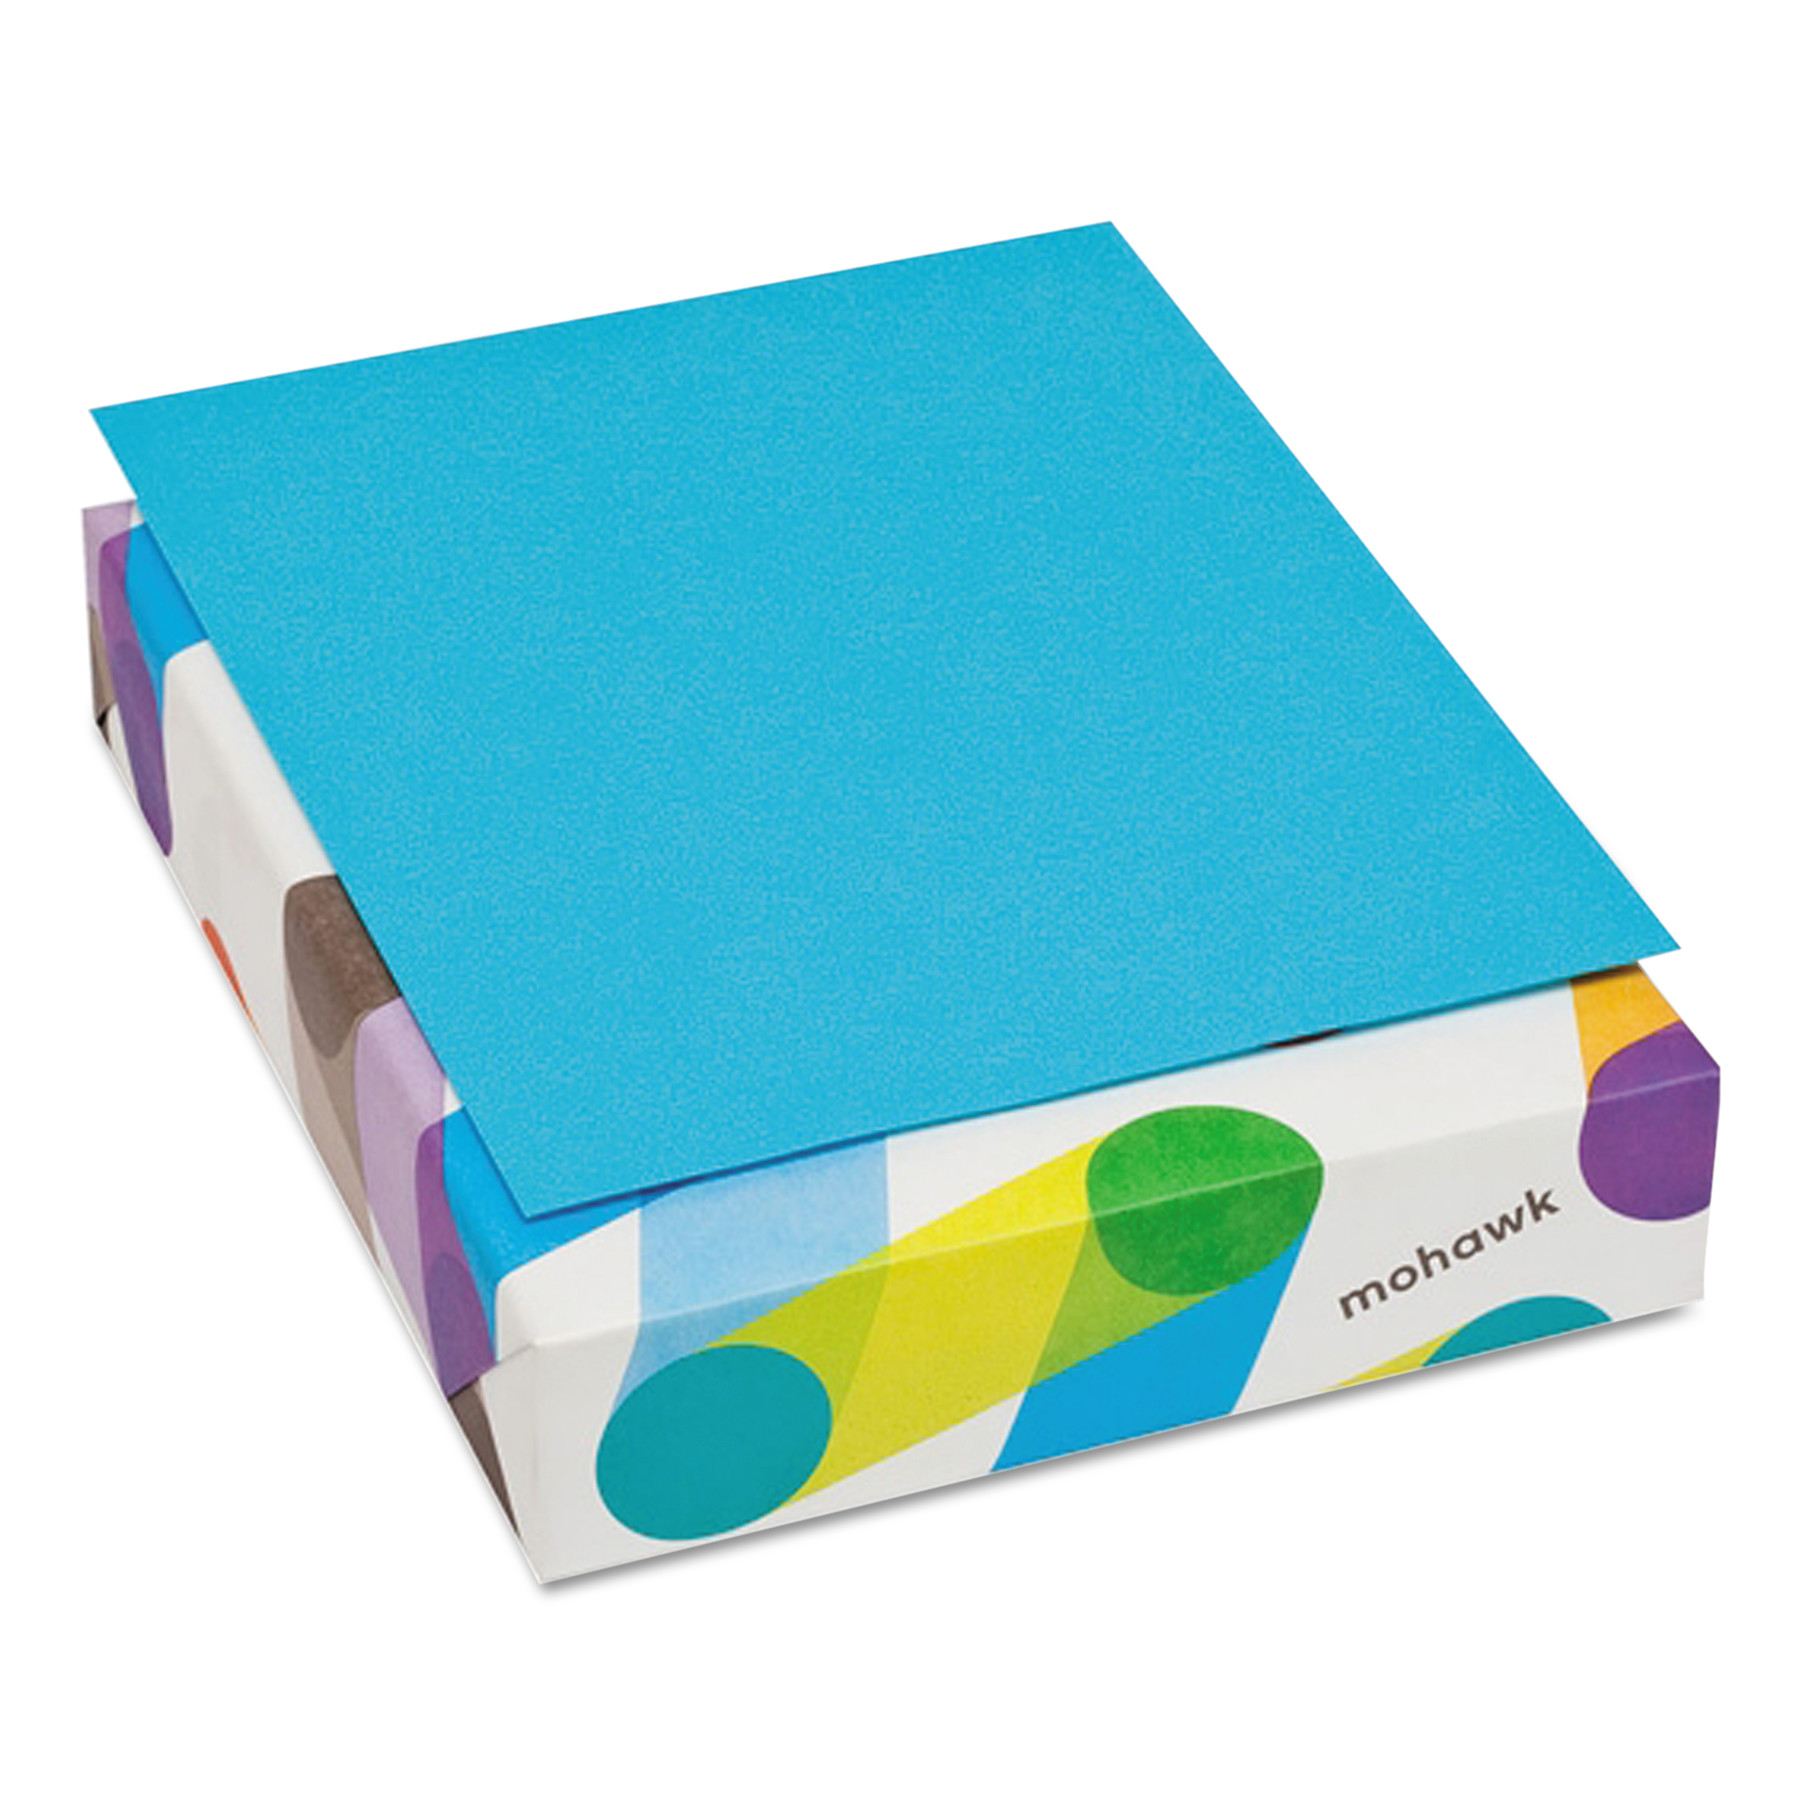 Mohawk BriteHue Multipurpose Colored Paper, 24lb, 8 1/2 x 11, Blue, 500 Sheets